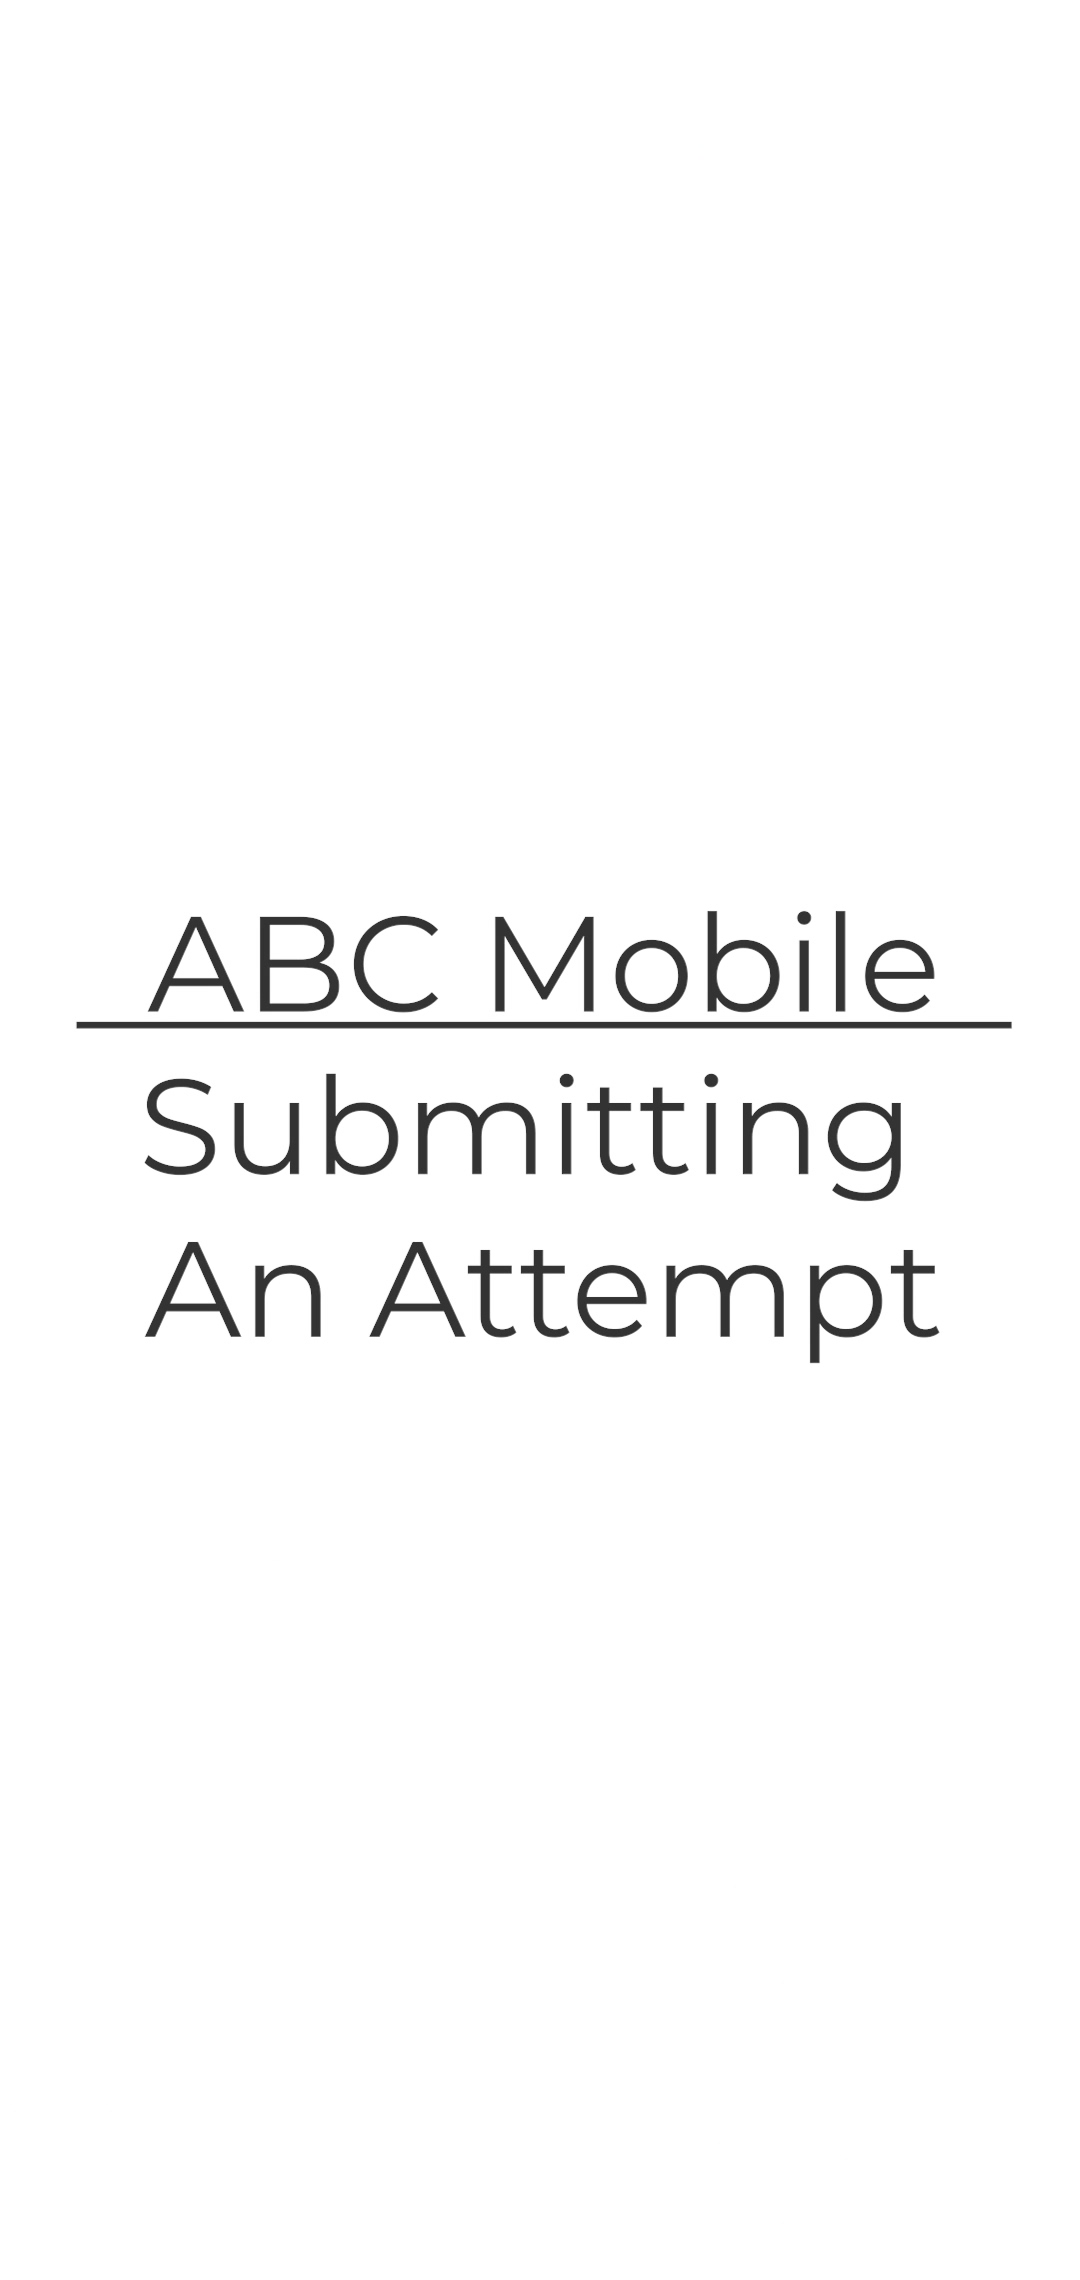 ABC Mobile - Submitting an Attempt 2.5.2021